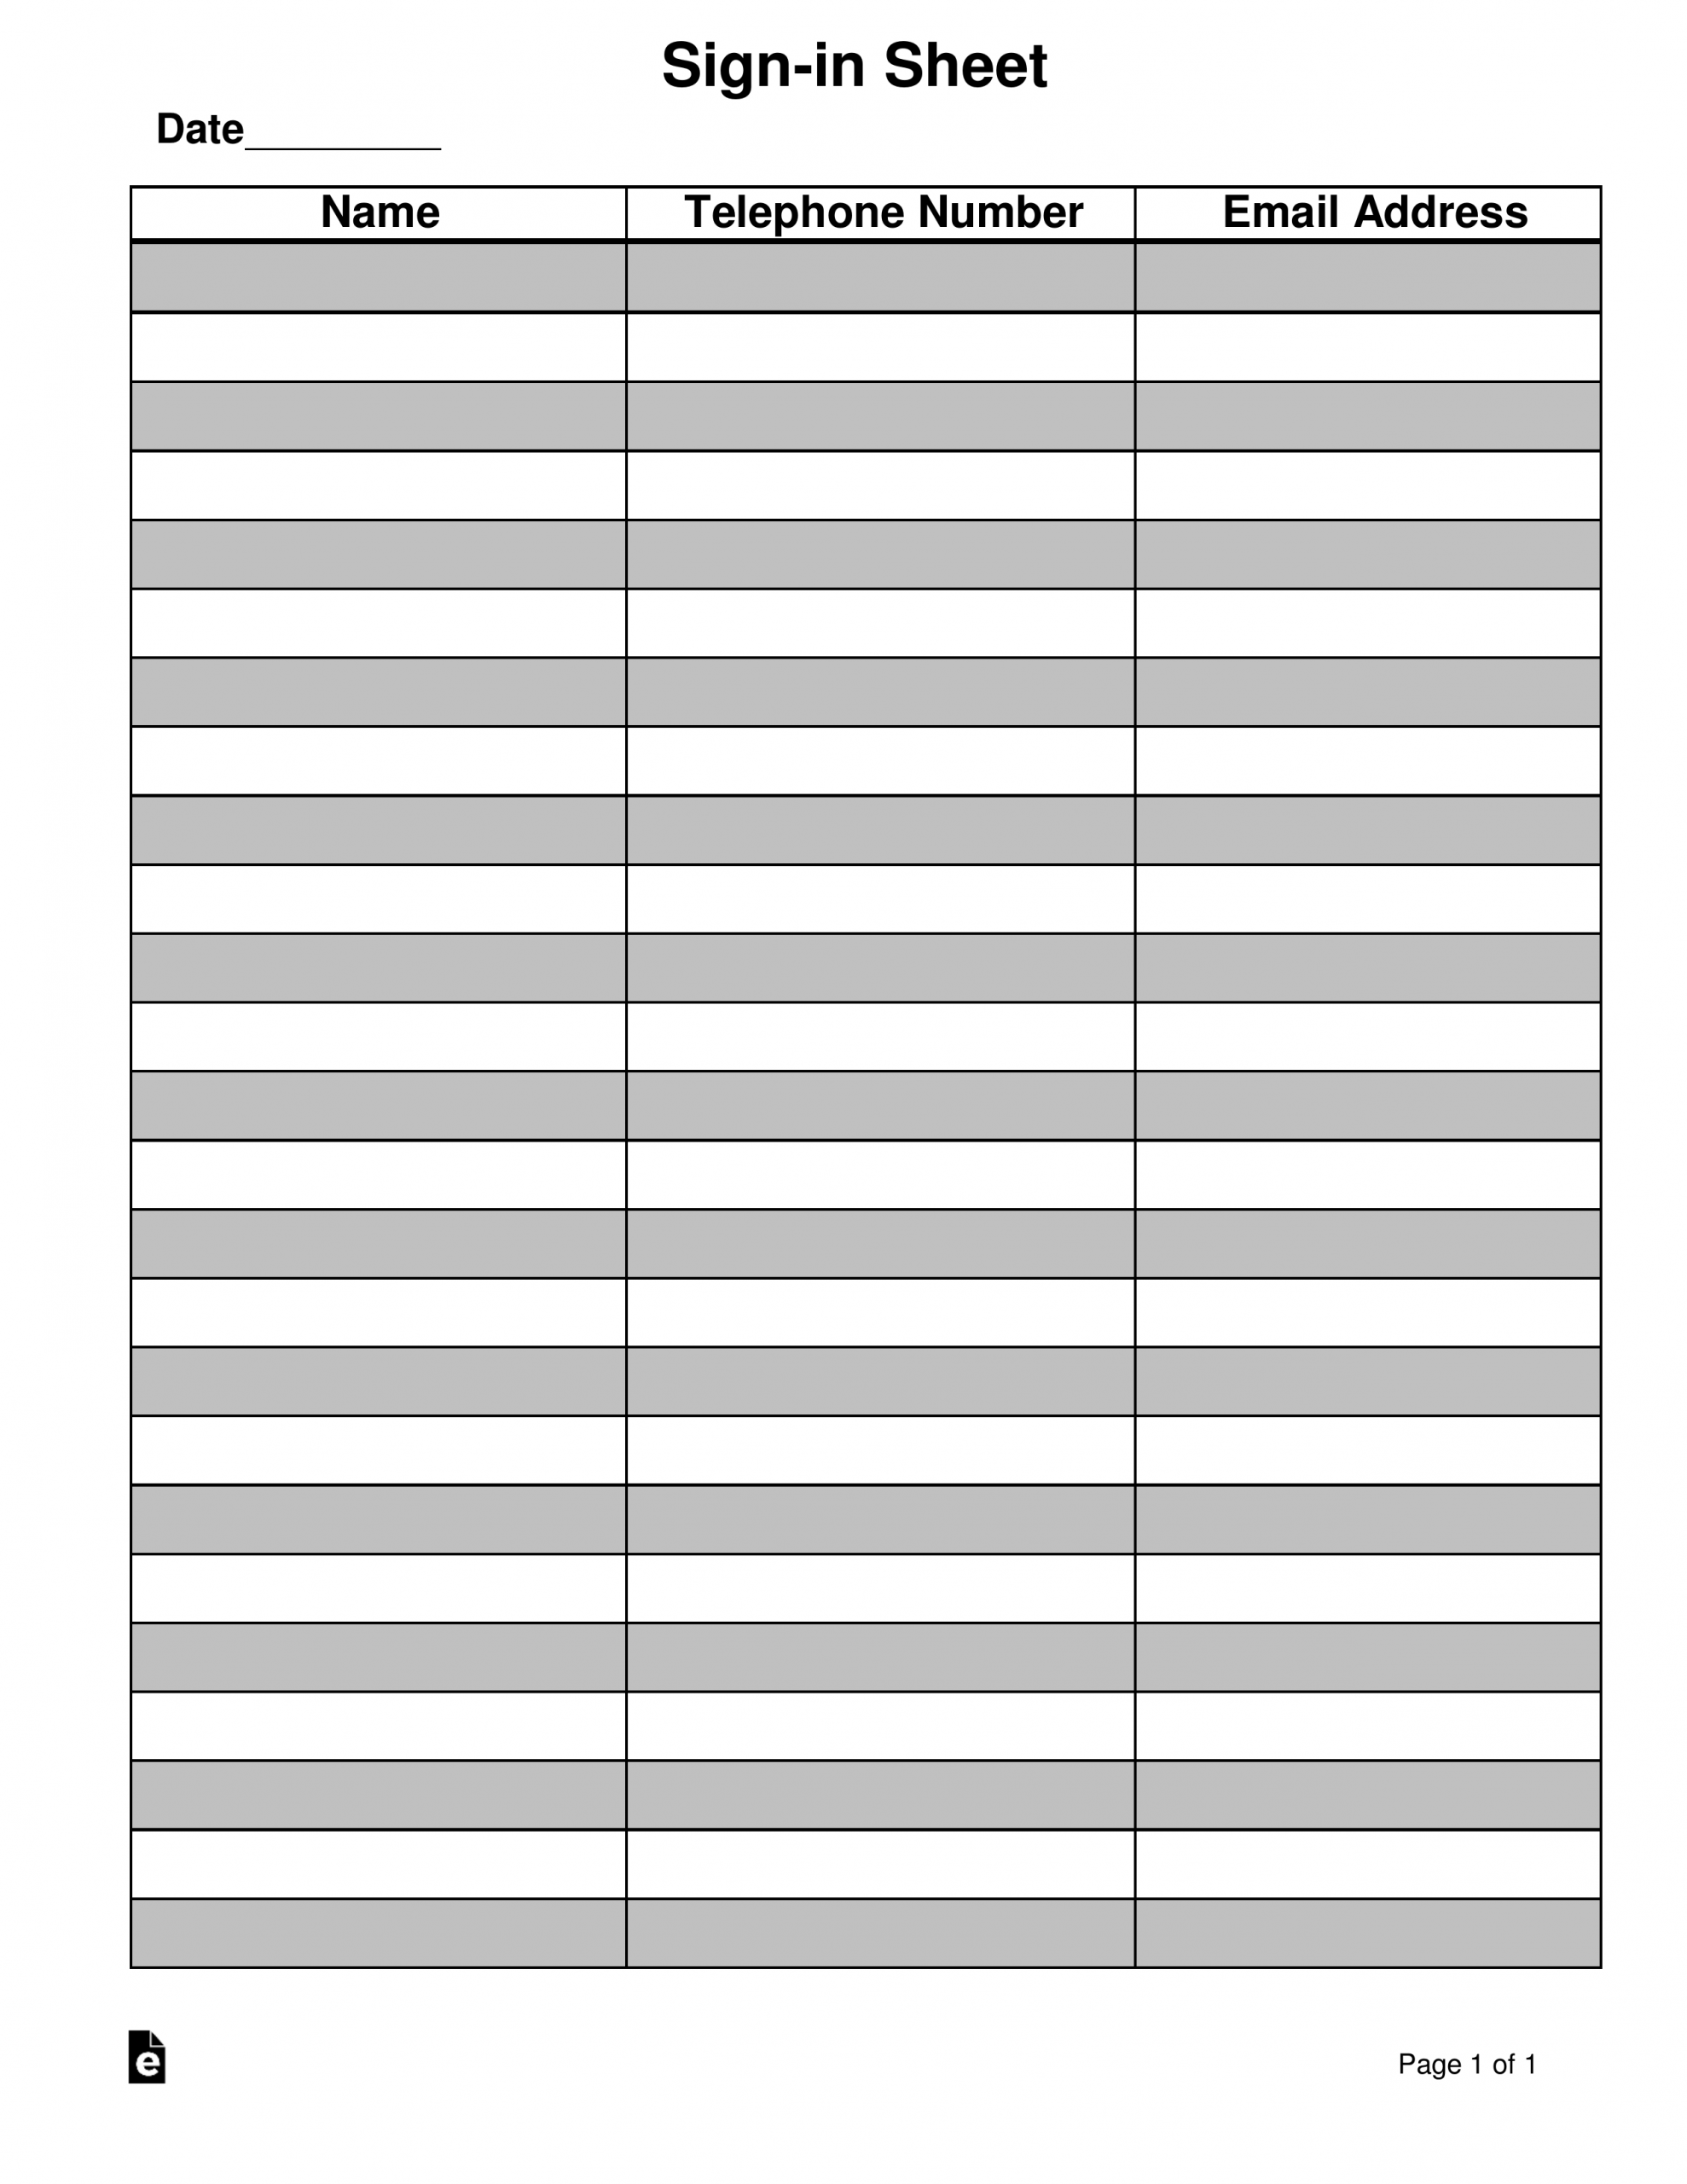 Attendance/Guest Sign-In Sheet Template   Eforms - Free On Callalendar Sign Up Template